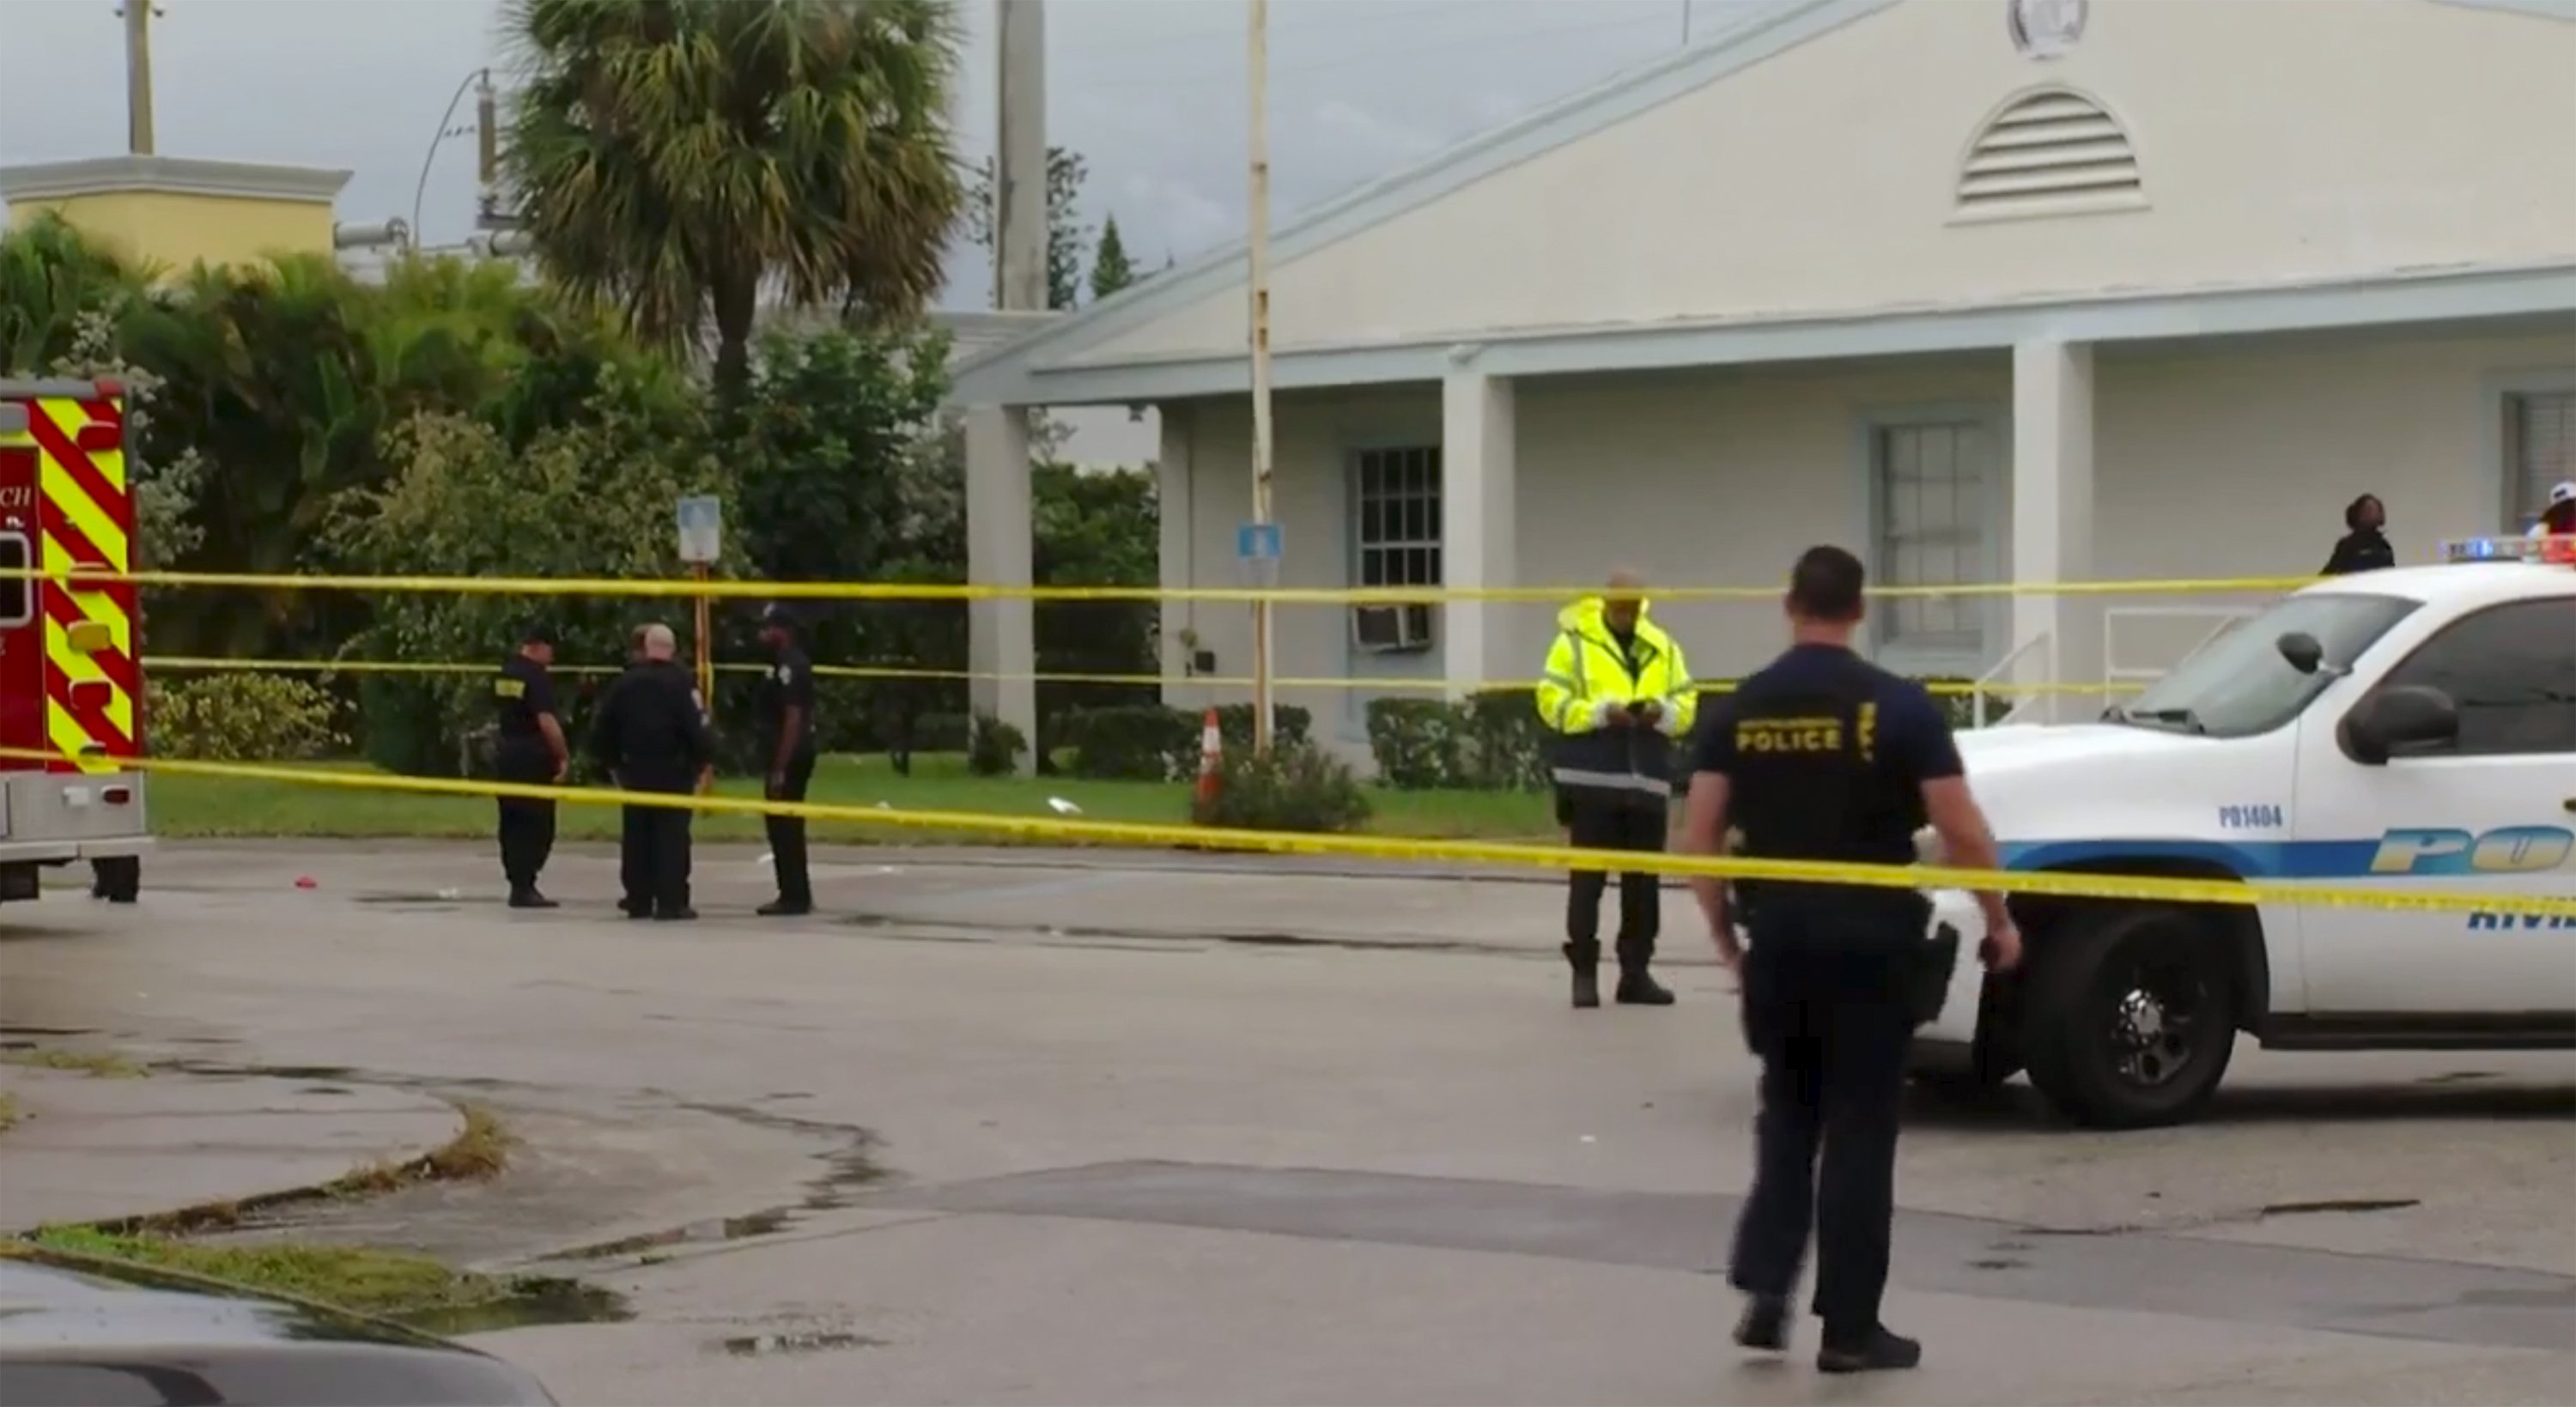 Police: 2 dead, 2 wounded in shooting after Florida funeral thumbnail